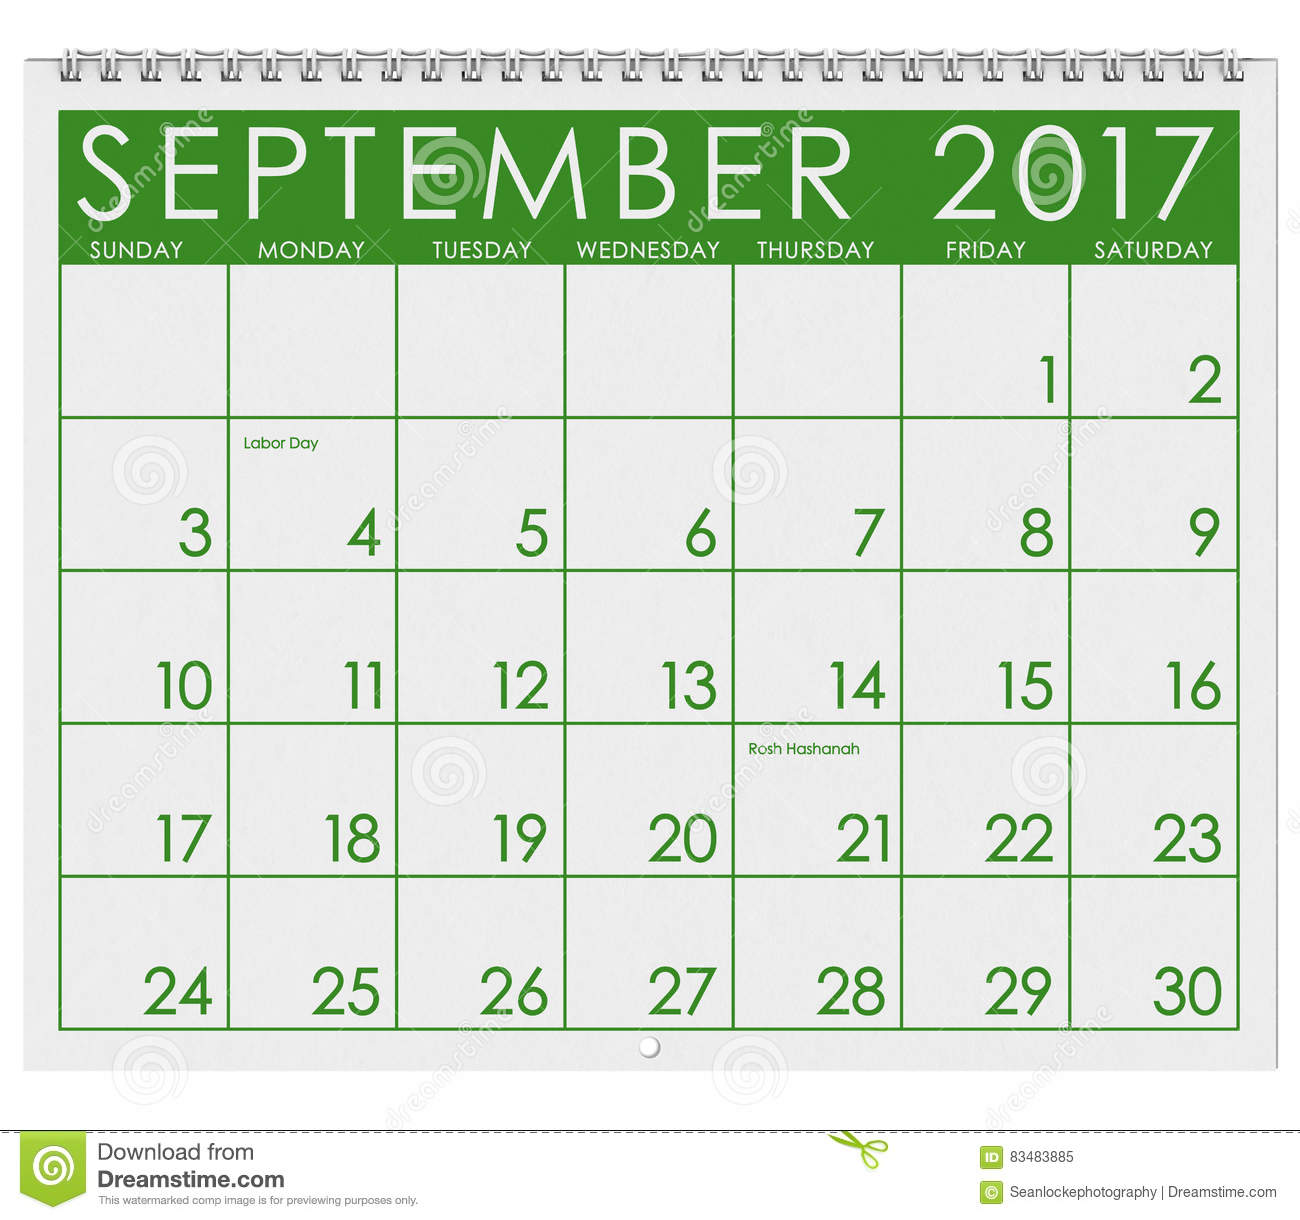 Calendar Labor Day : Calendar month of september with labor day stock